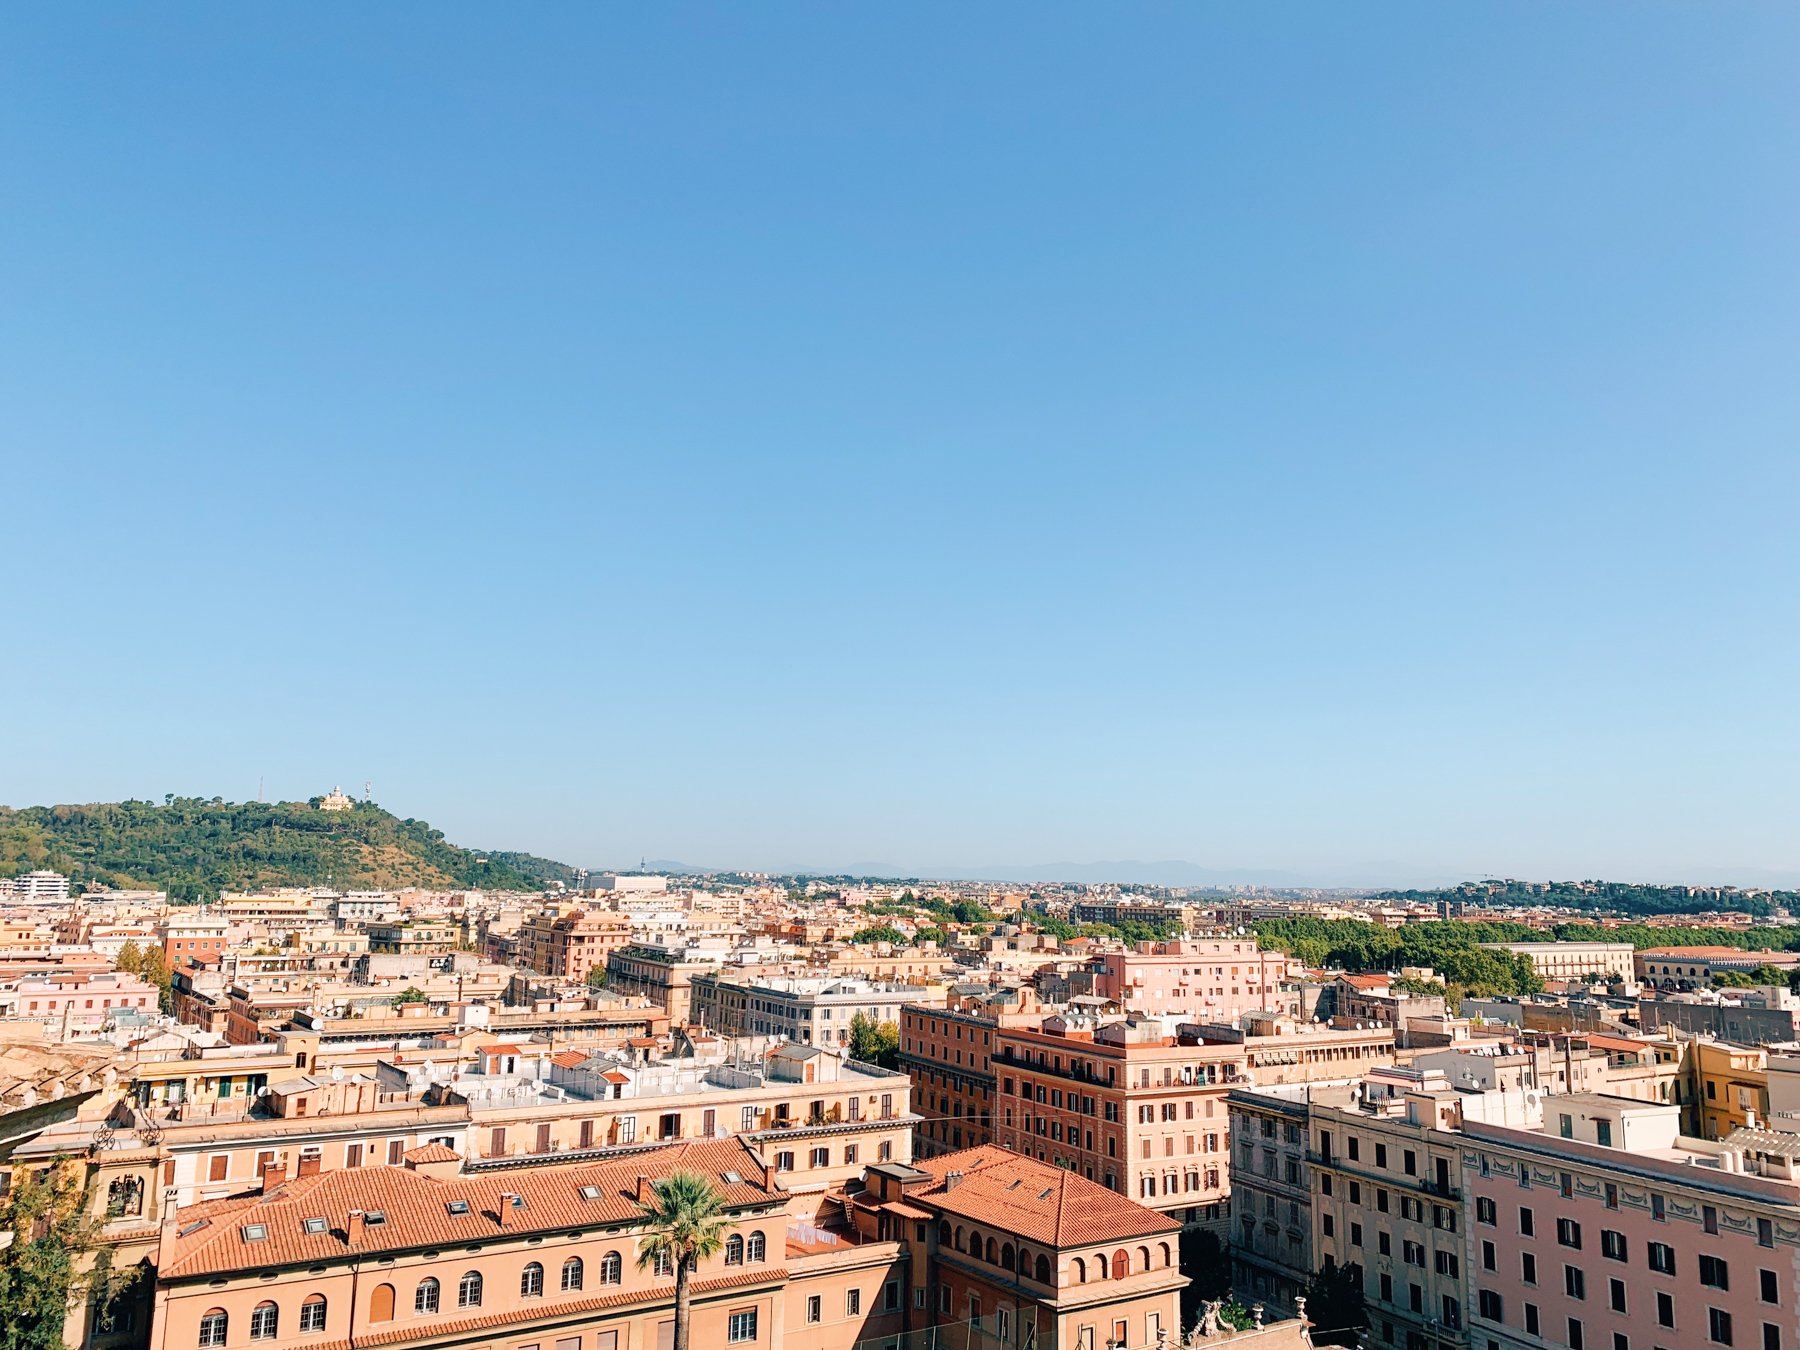 A view of the city from the Vatican Museums.